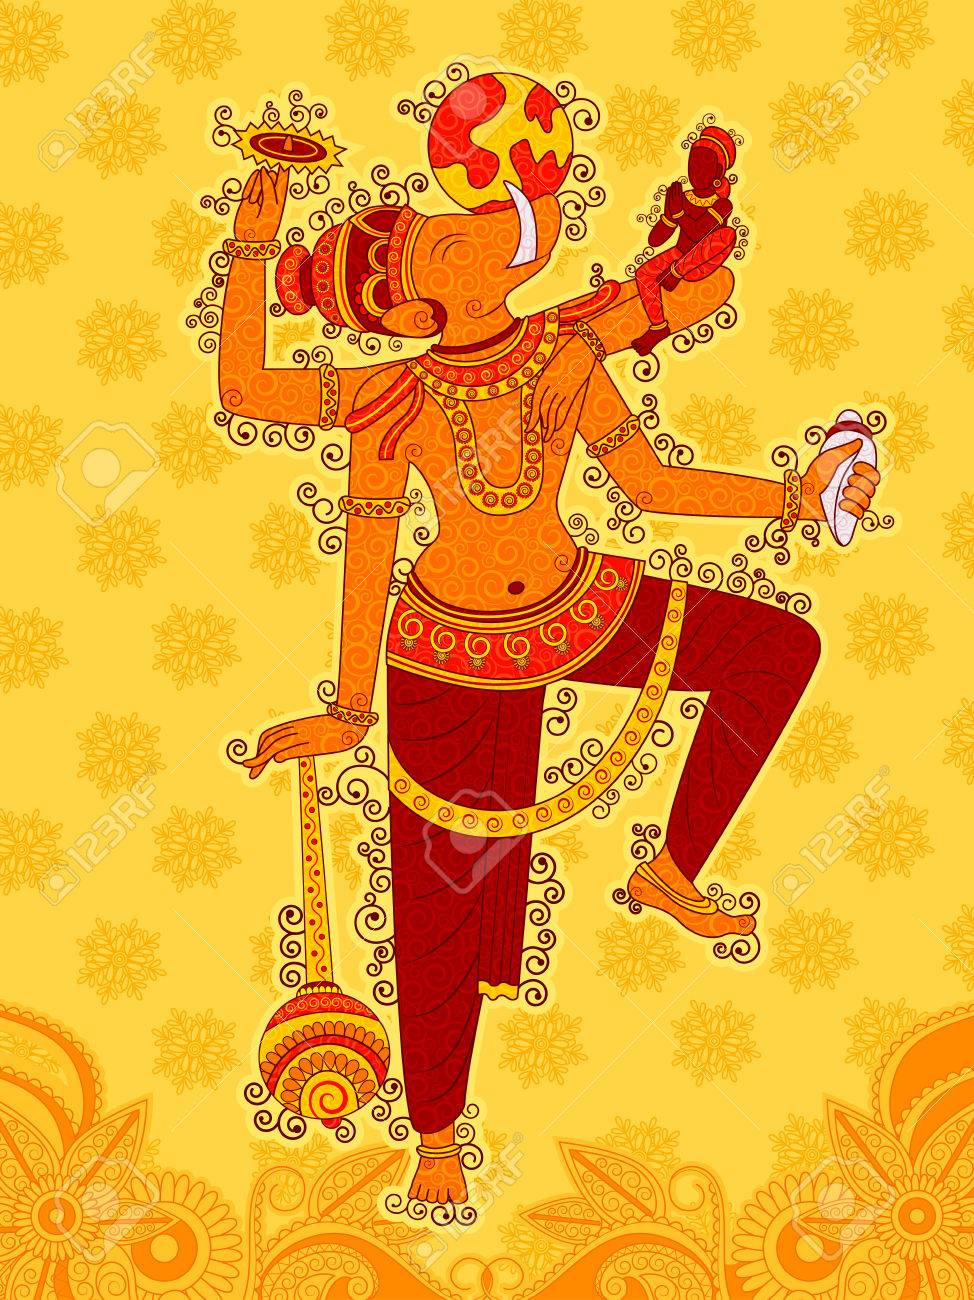 Vector design of Vintage statue of Indian Lord Varaha sculpture one of avatar from the Dashavatara of Vishnu in India art style - 84828564